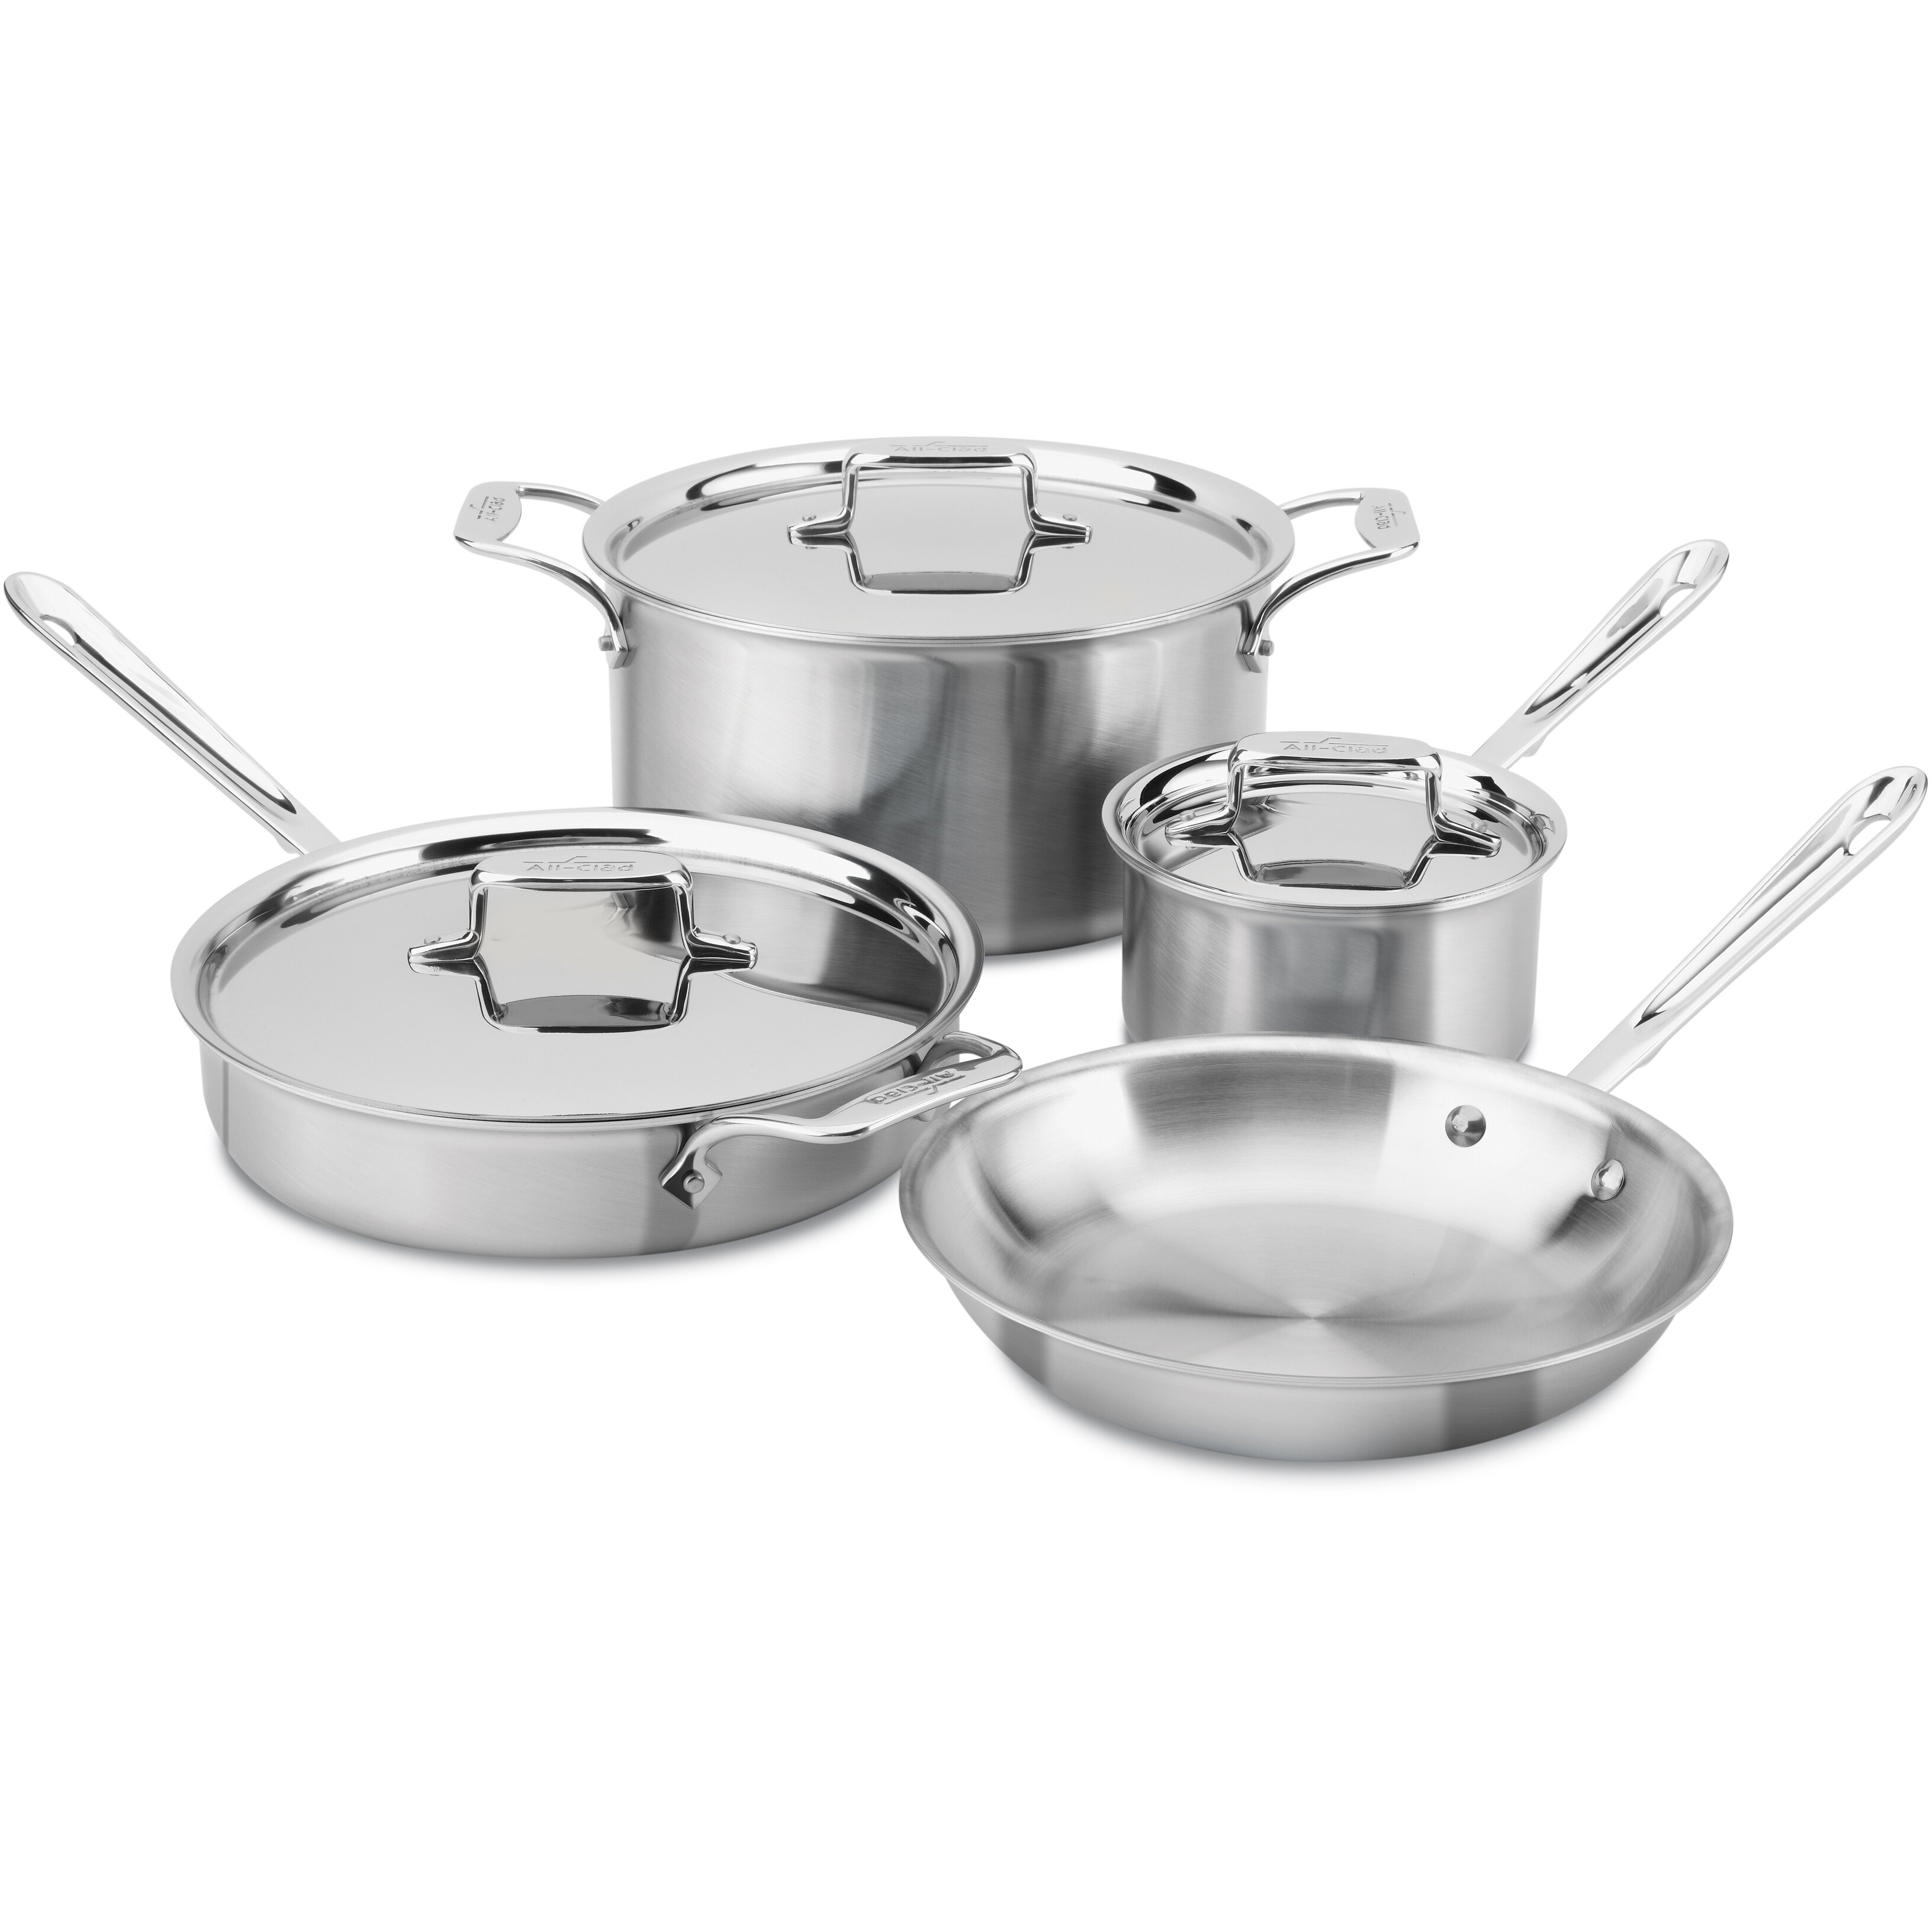 All clad stainless steel cookware sets - All Clad Brushed Stainless Steel 7 Piece Cookware Set